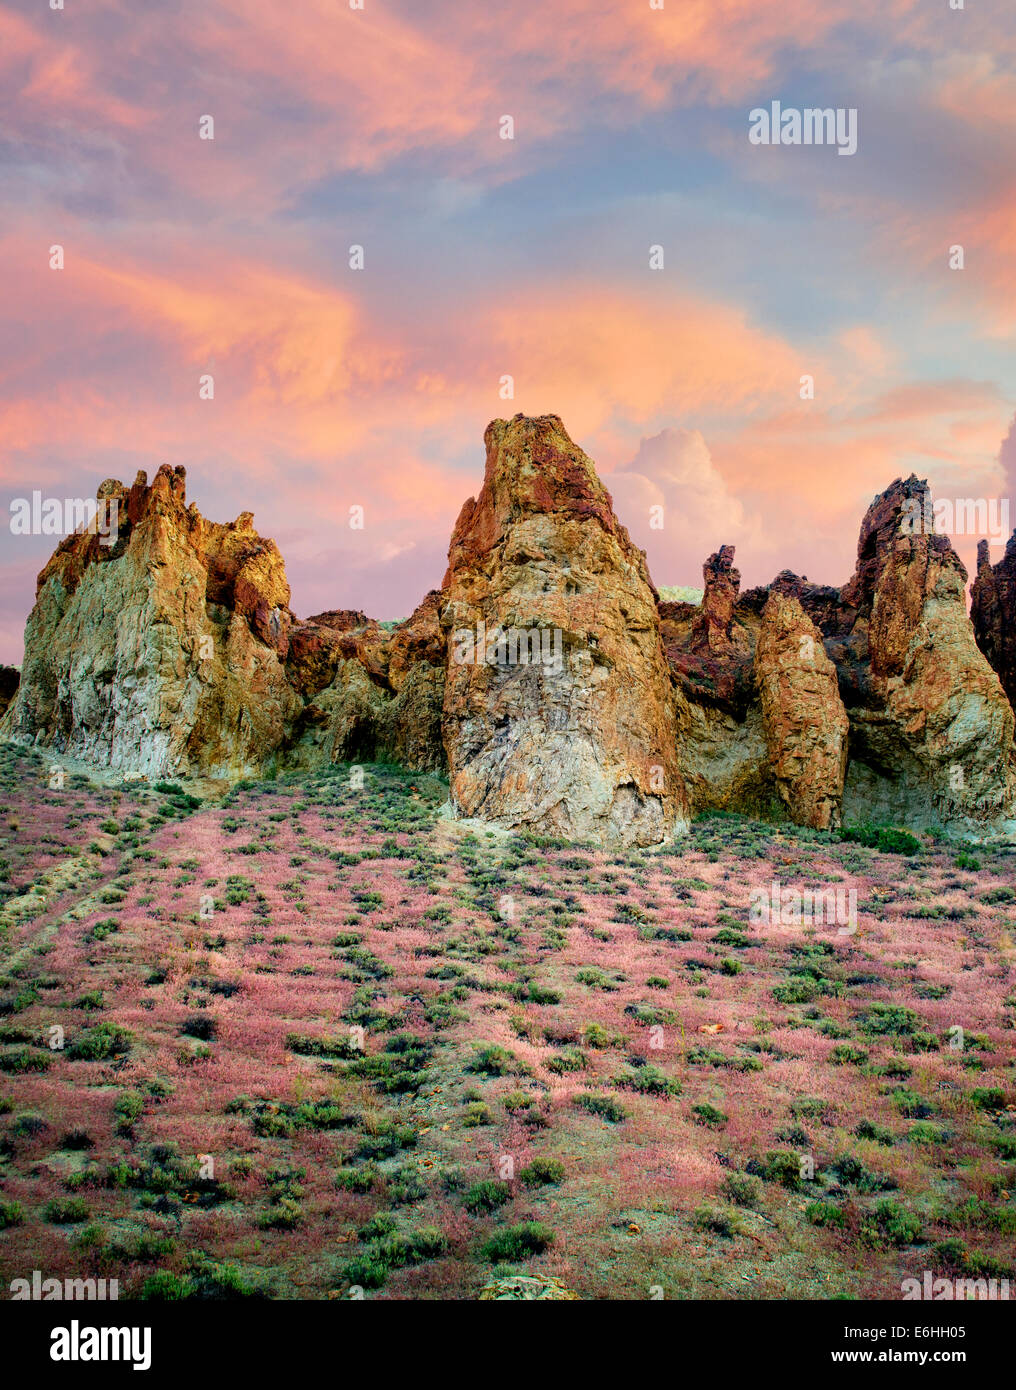 Rock formations with red Brome Grass and clouds in Leslie Gultch. Malhuer County, Oregon - Stock Image